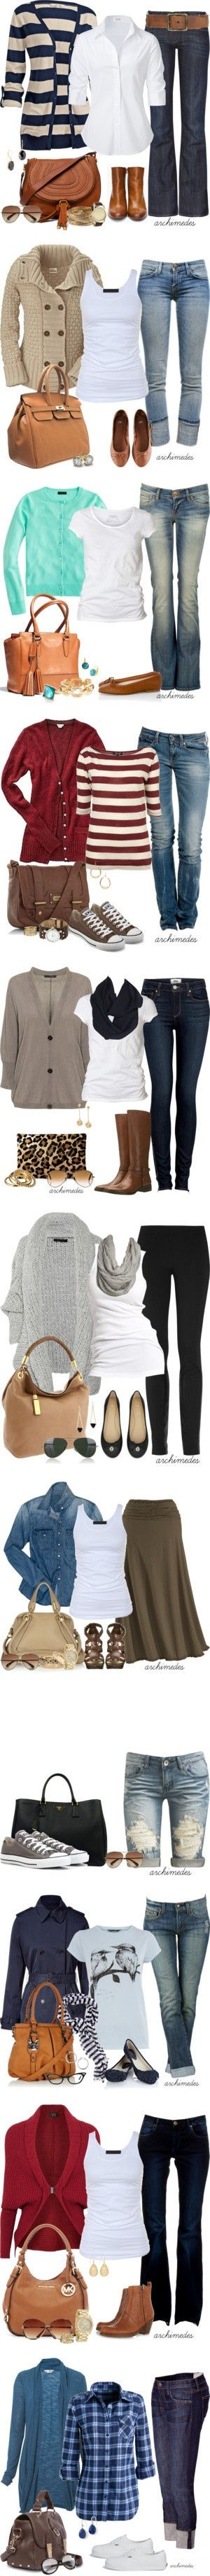 #girly #outfit of the day #clothes #fashion